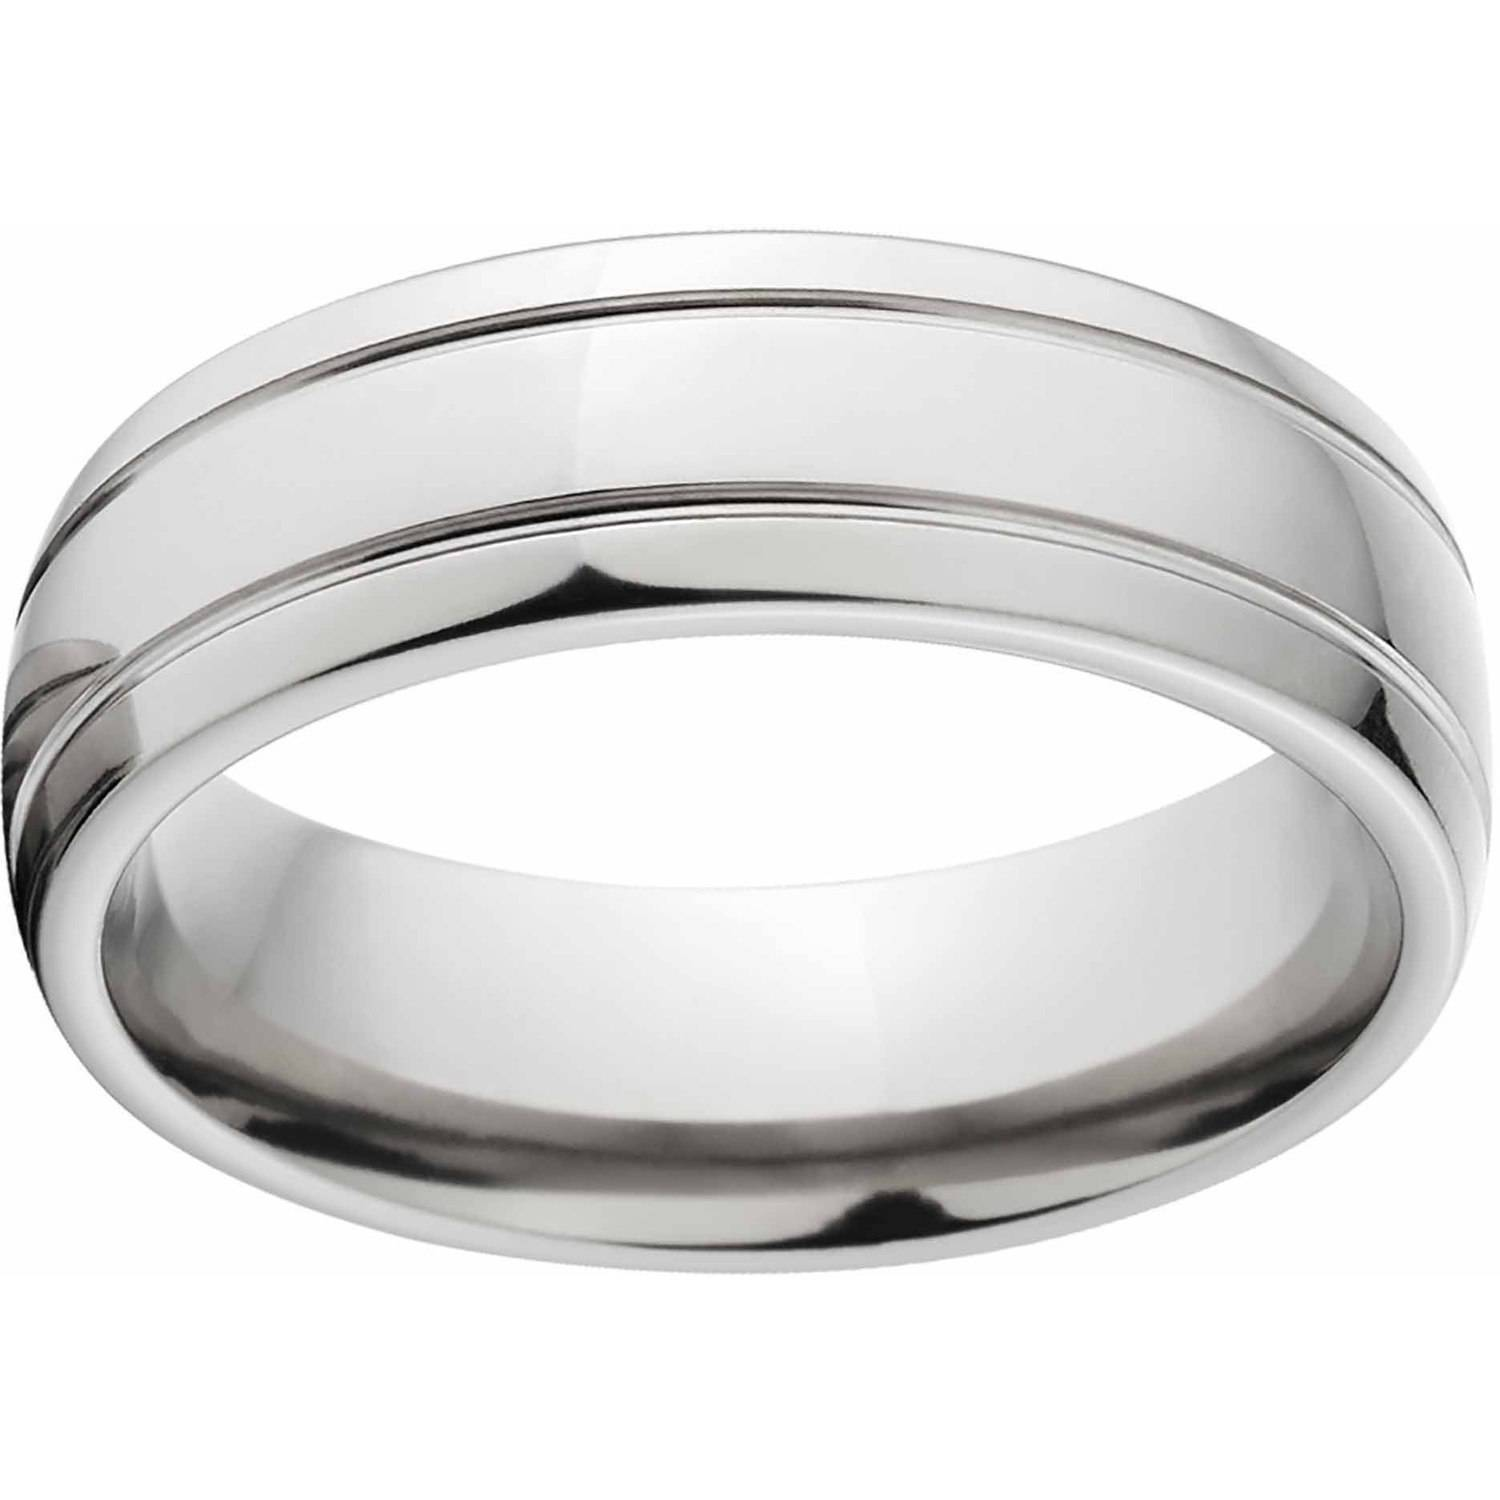 Jewelry Pot Titanium Grooved Beaded 6mm Polished Engravable Band